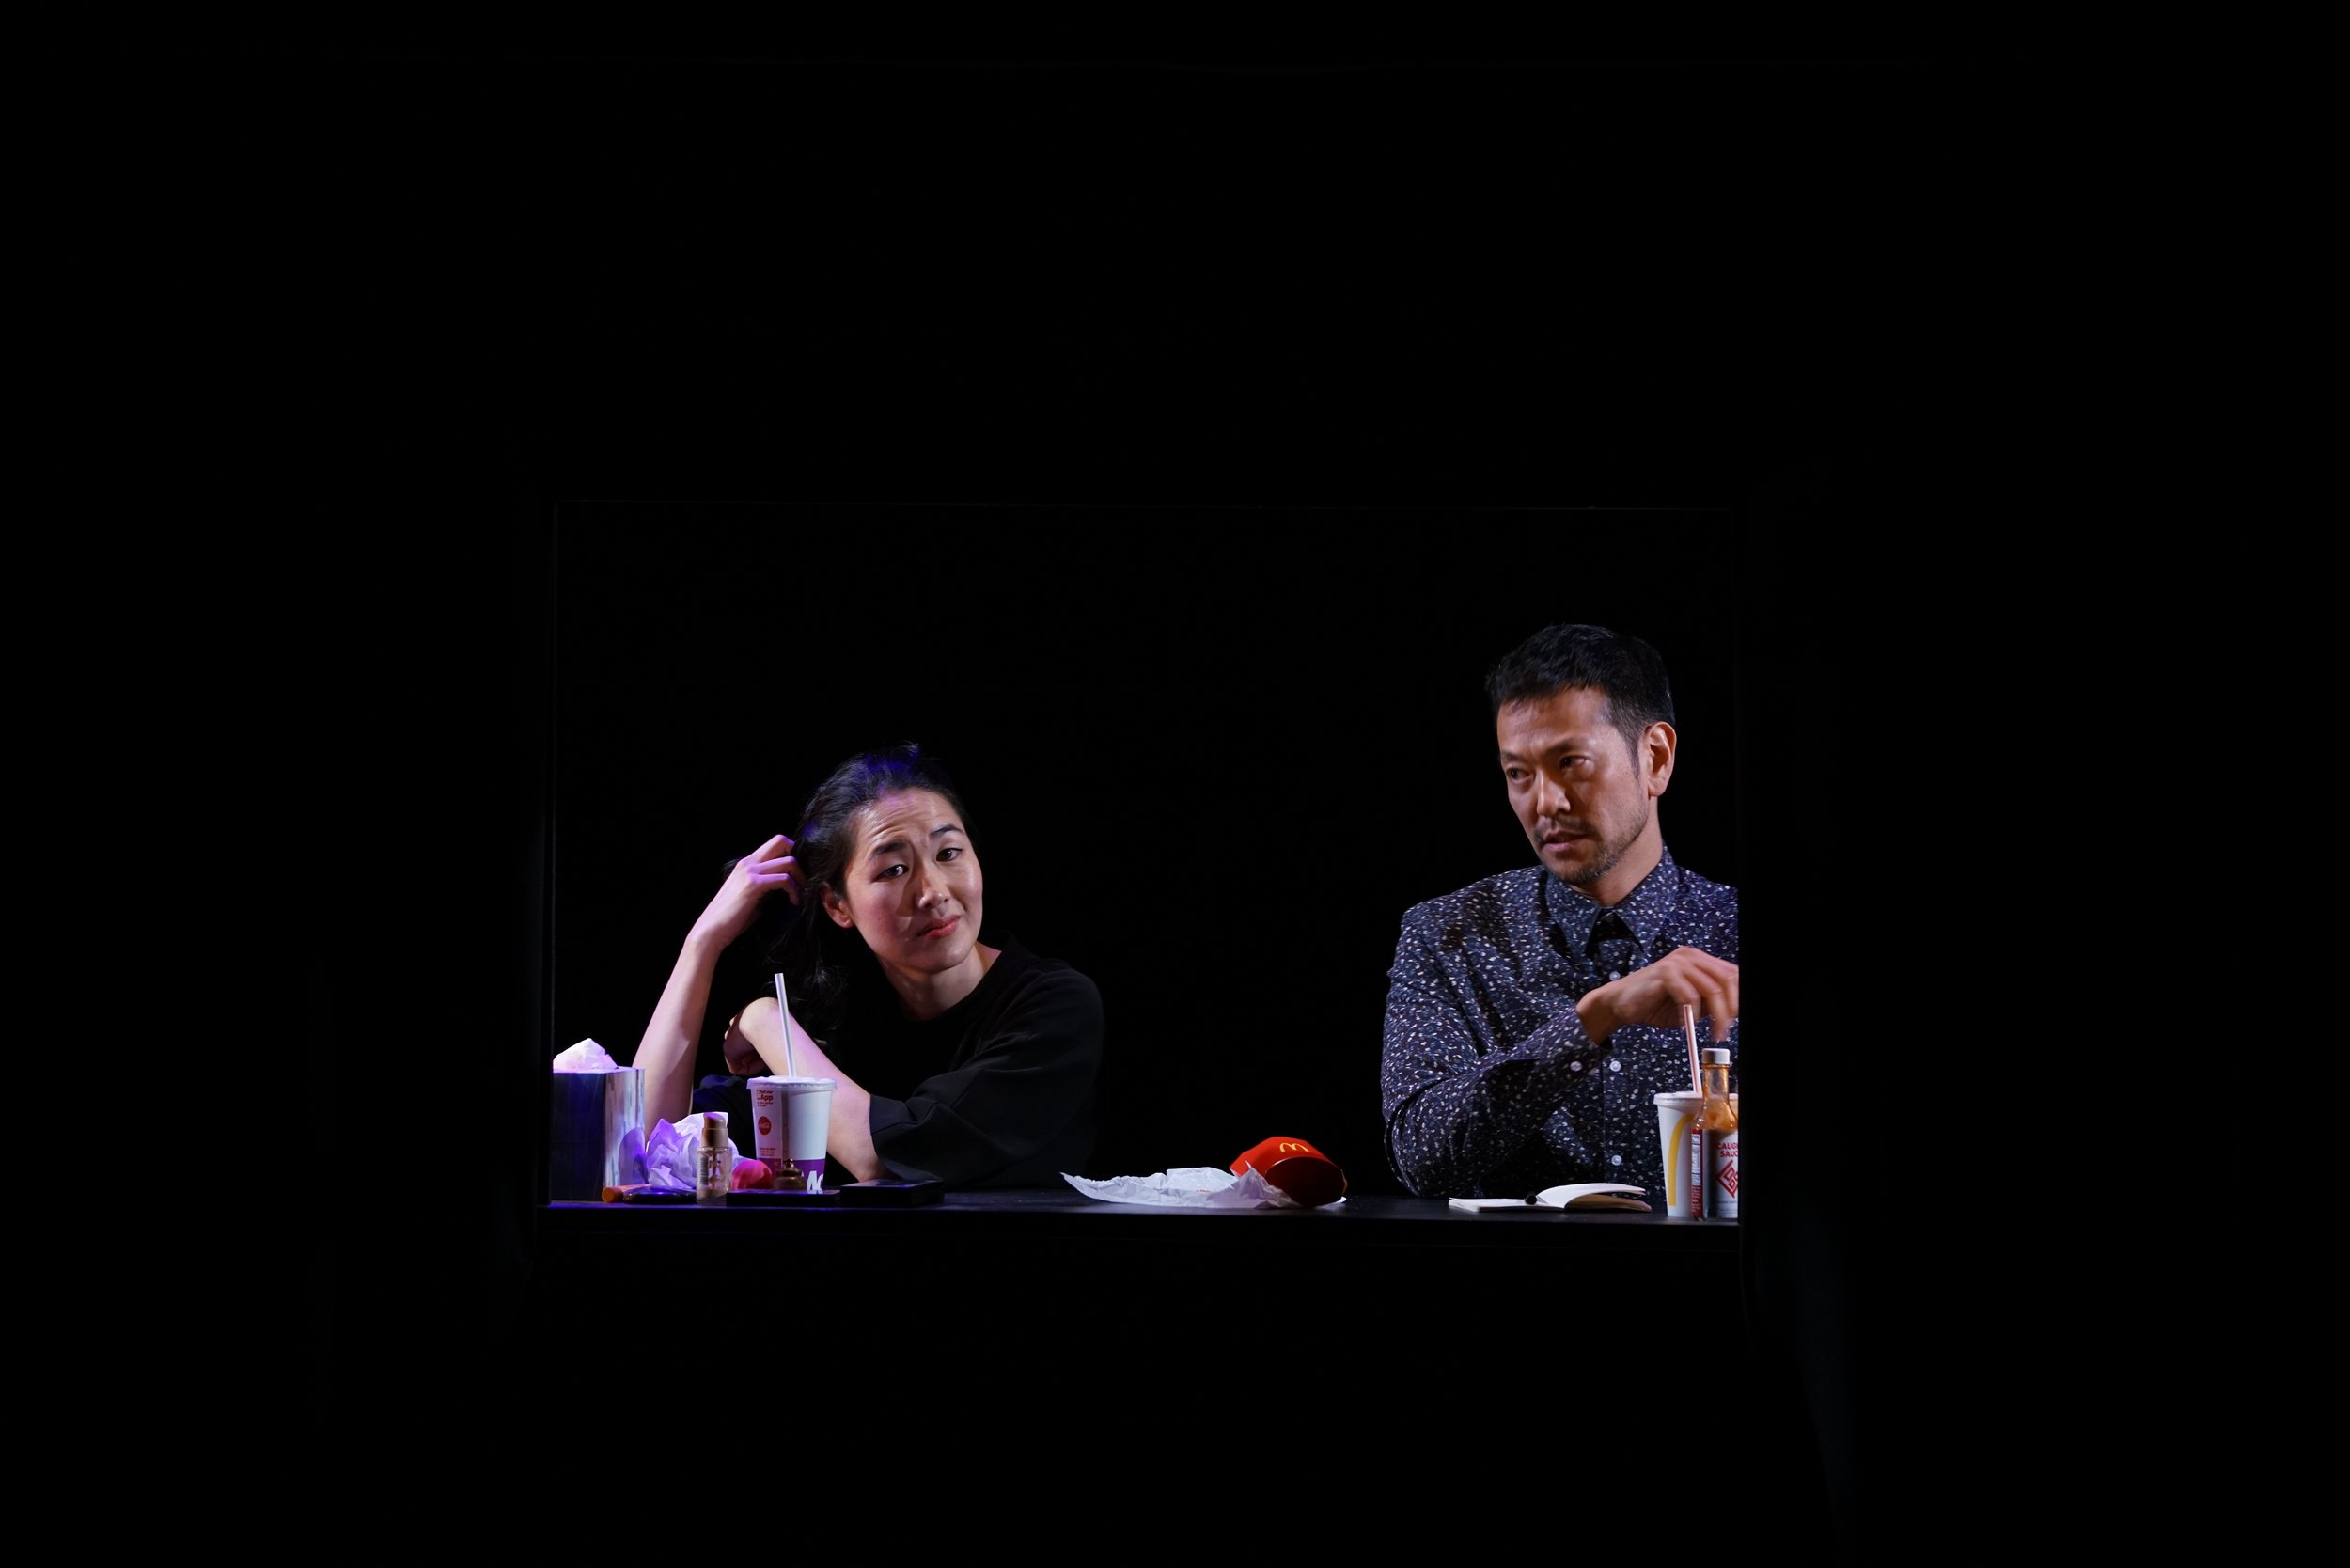 Louis Changchien, Jackie Chung in CAUGHT (c) 2017 Firefly Theater and Films (3).jpg